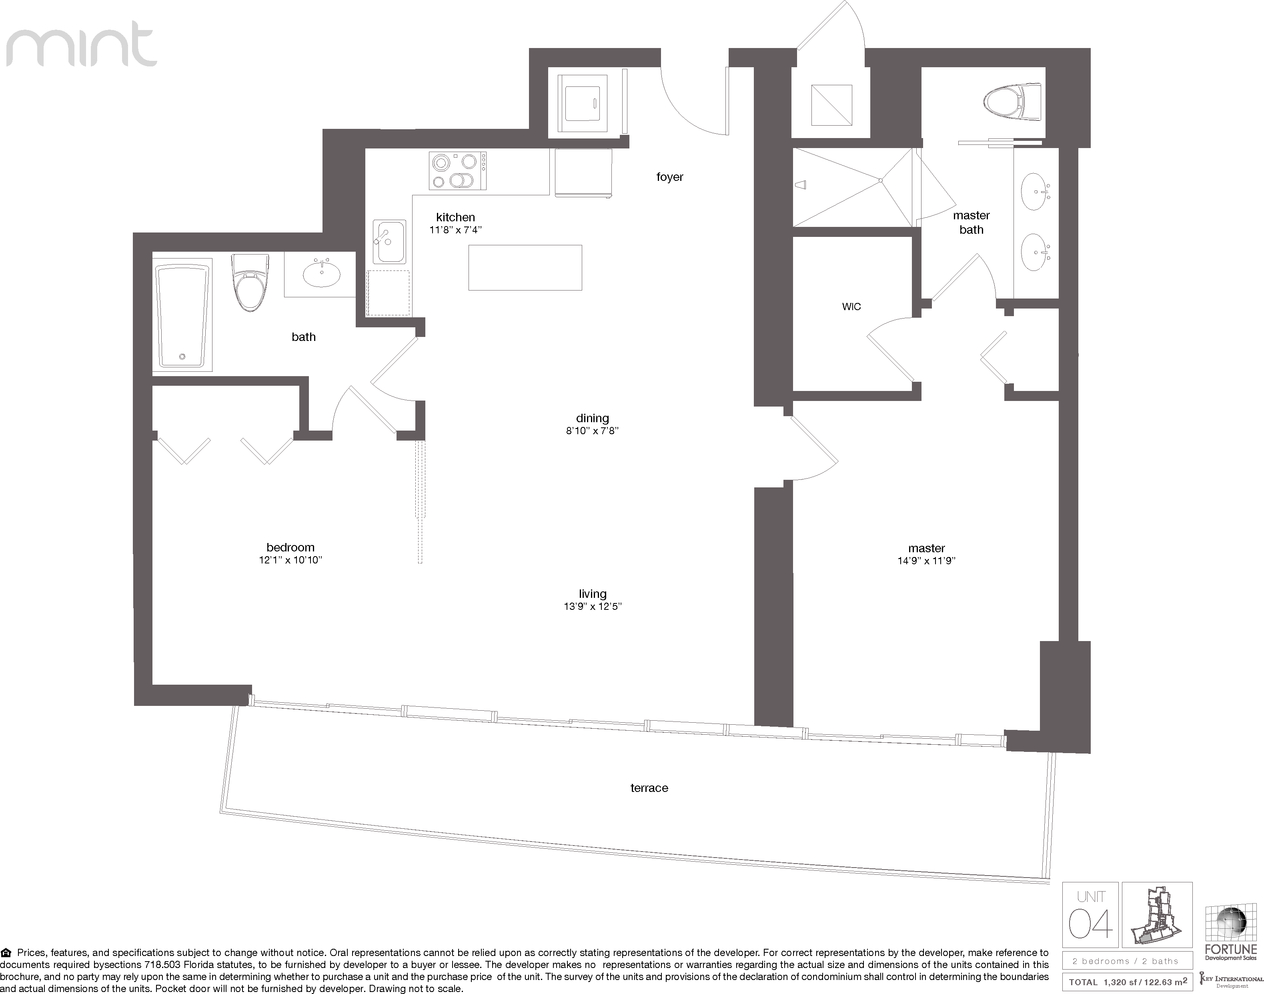 Miamiresidence apartments for sale miami property for 1121 bay street floor plans